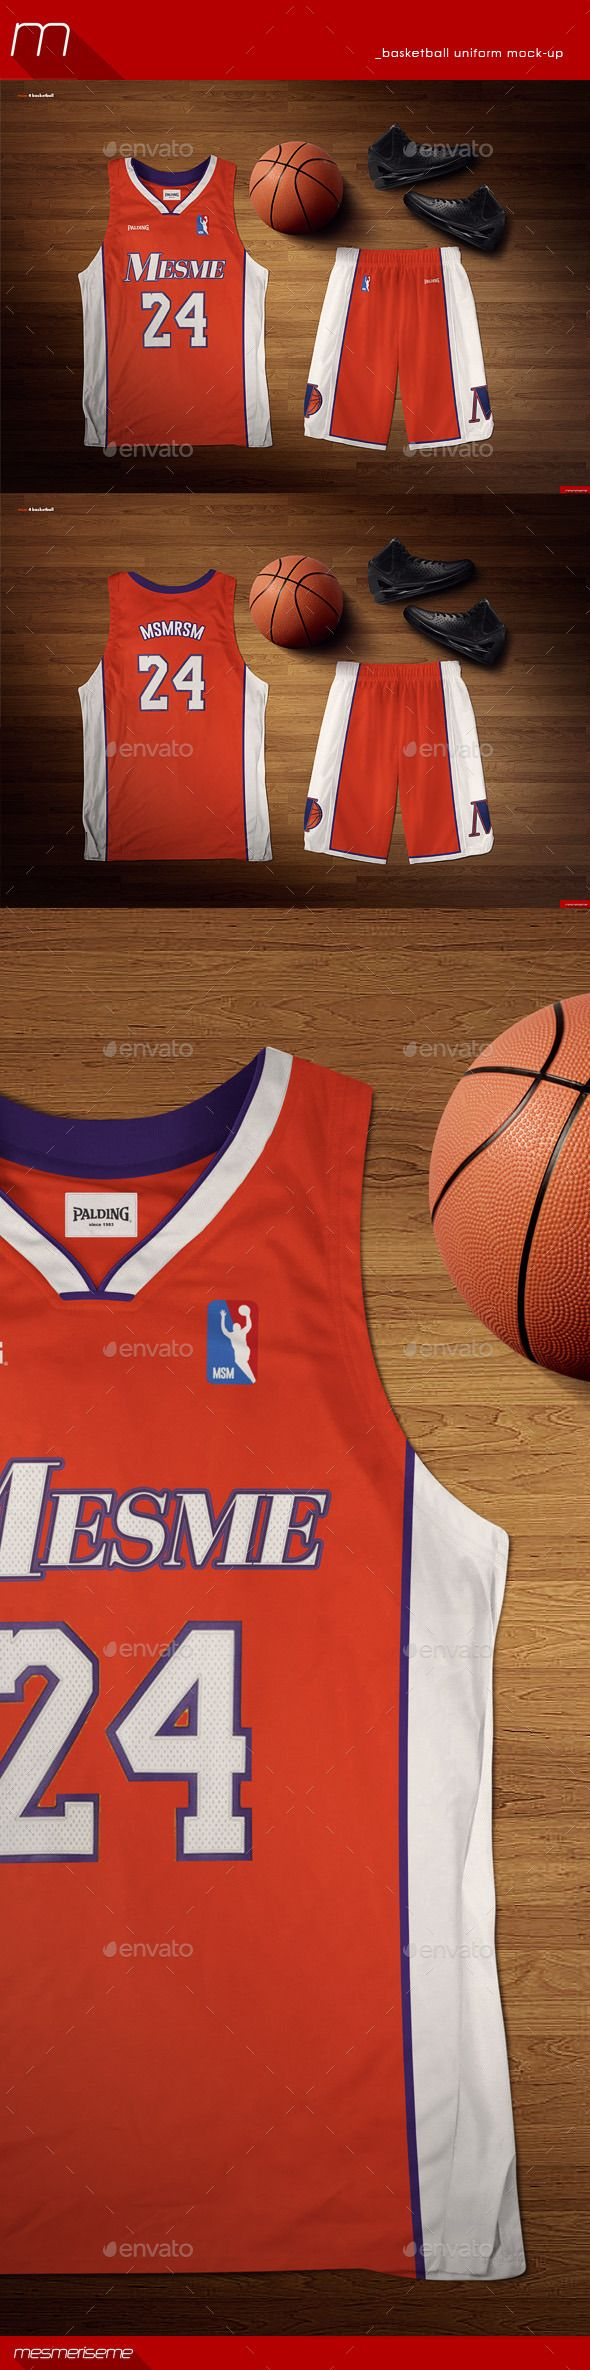 Download Basketball Uniform Mock Up Download Http Graphicriver Net Item Basketball Uniform Mockup 8892993 Ref Ksioks Basketball Uniforms Basketball Uniform